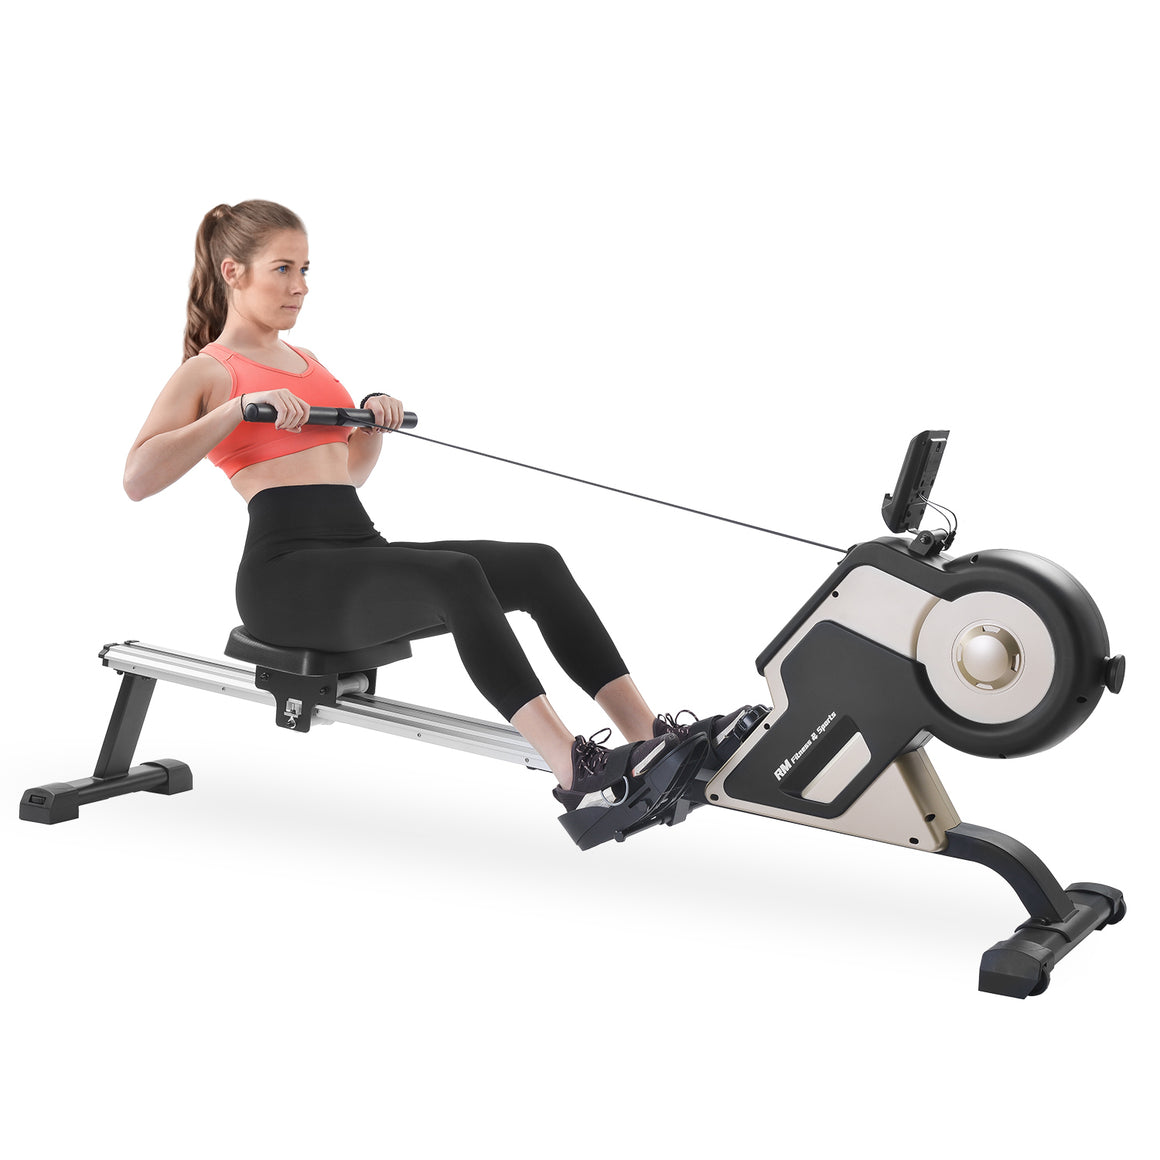 GT Magnetic Rowing Machine Compact Indoor Rower with Magnetic Tension System, LED Monitor and 8-level Resistance Adjustment Fitness Equipment for Home Gym US-1